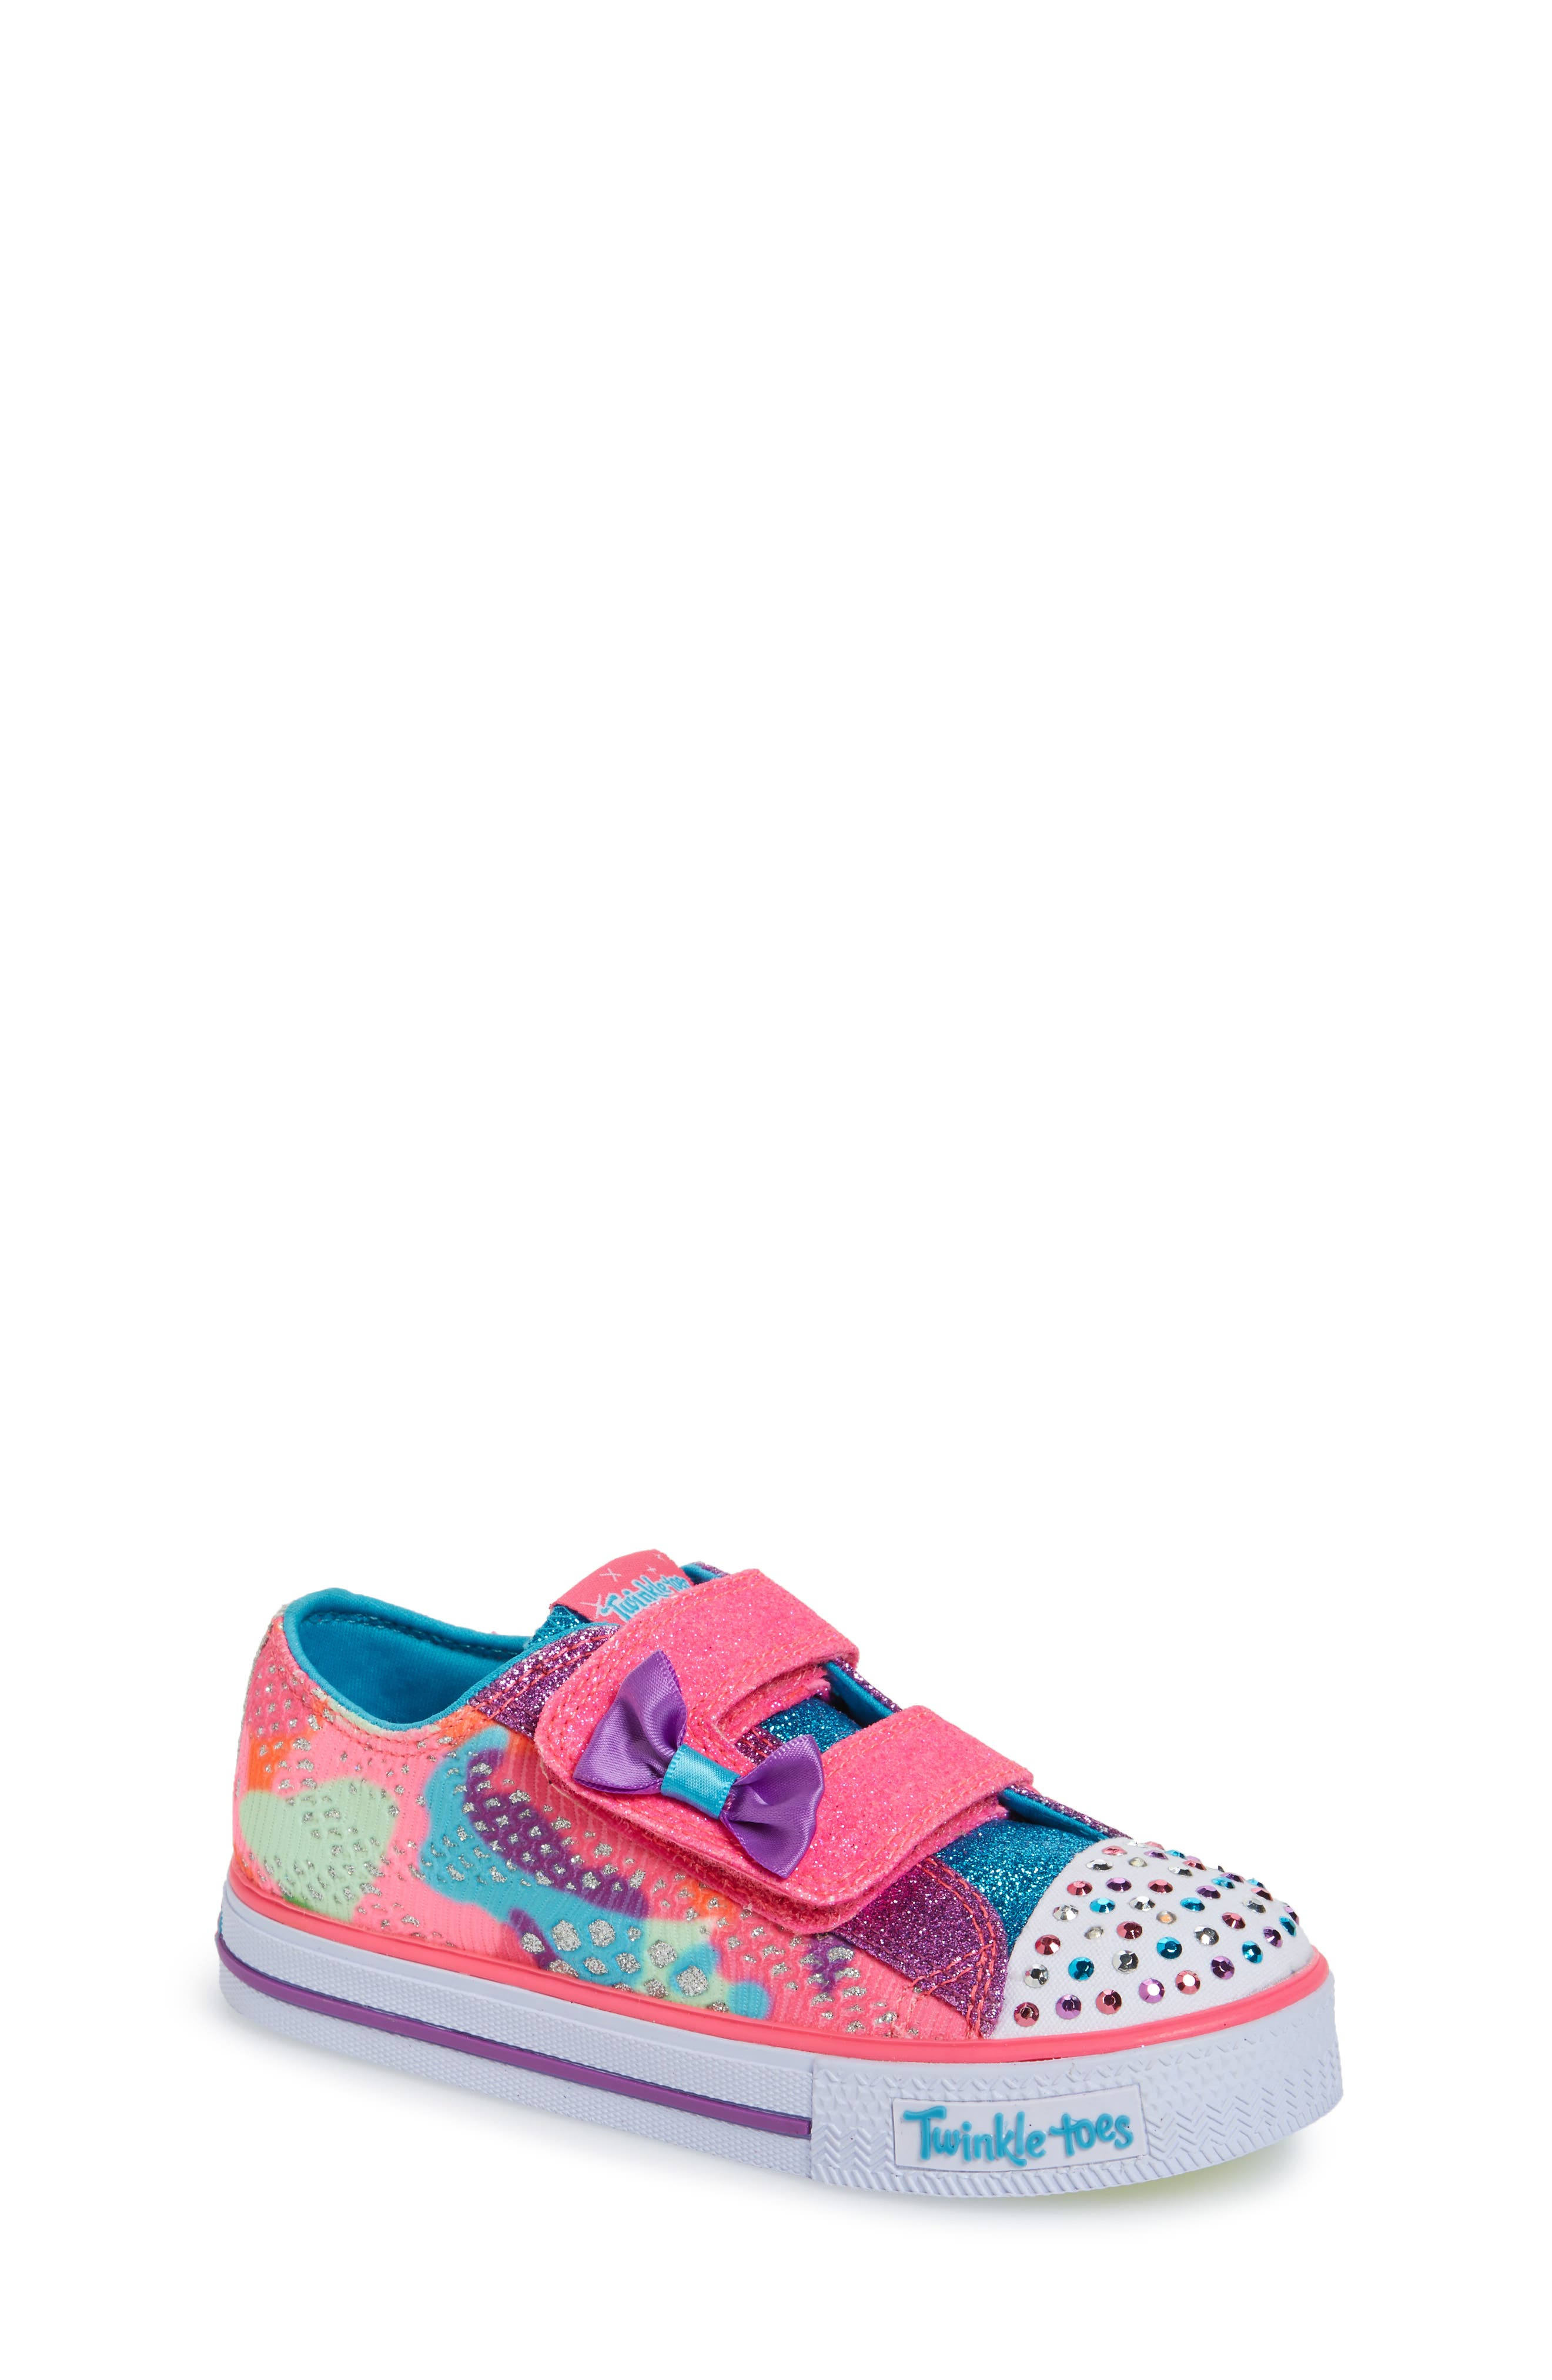 Twinkle Toes Shuffles Light-Up Sneaker,                         Main,                         color, 650